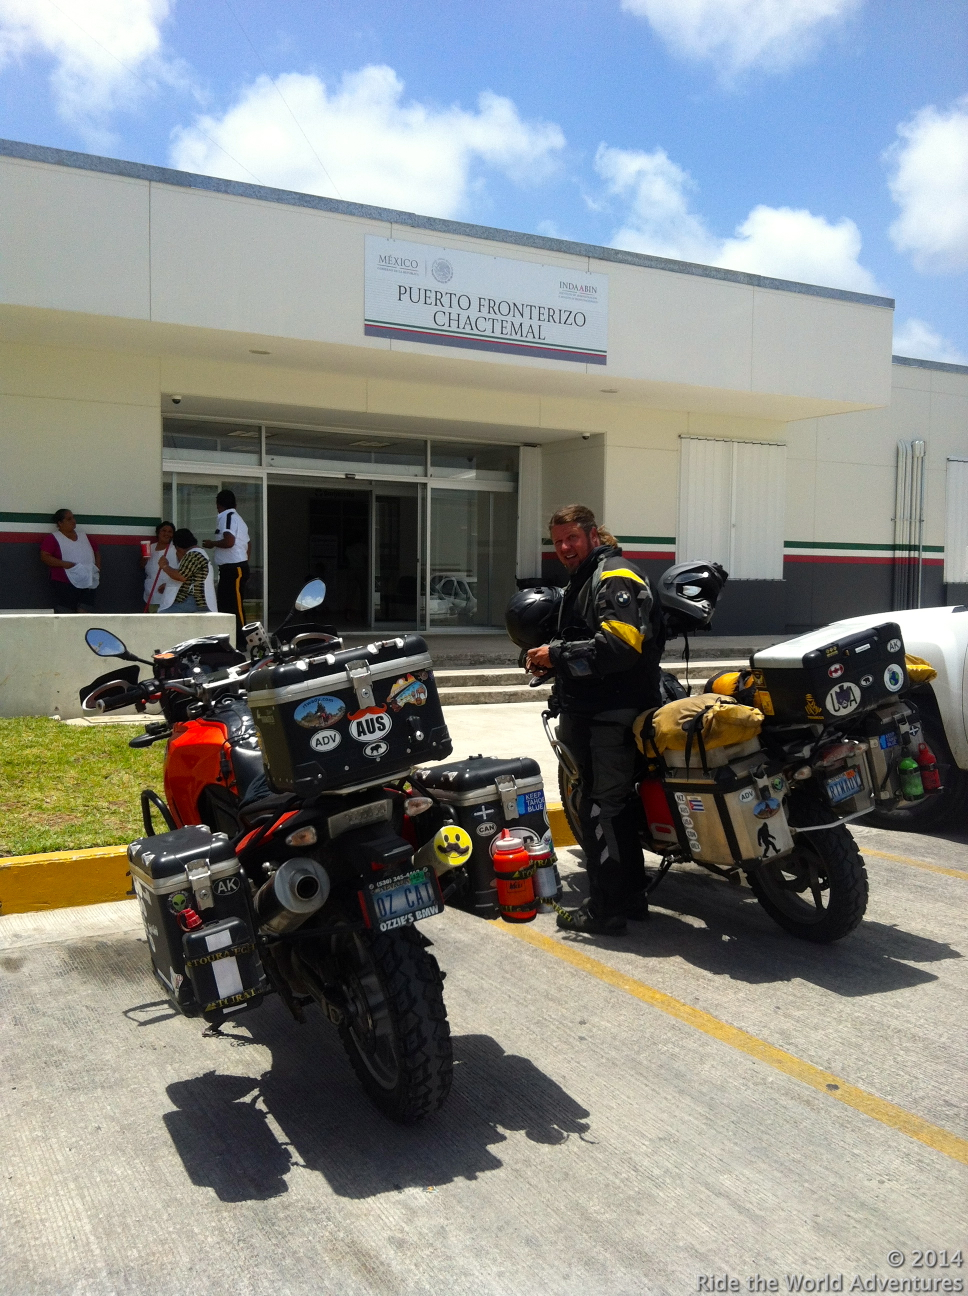 Getting bikes cleared and stamped out of Mexico, in order to receive our bond refund.